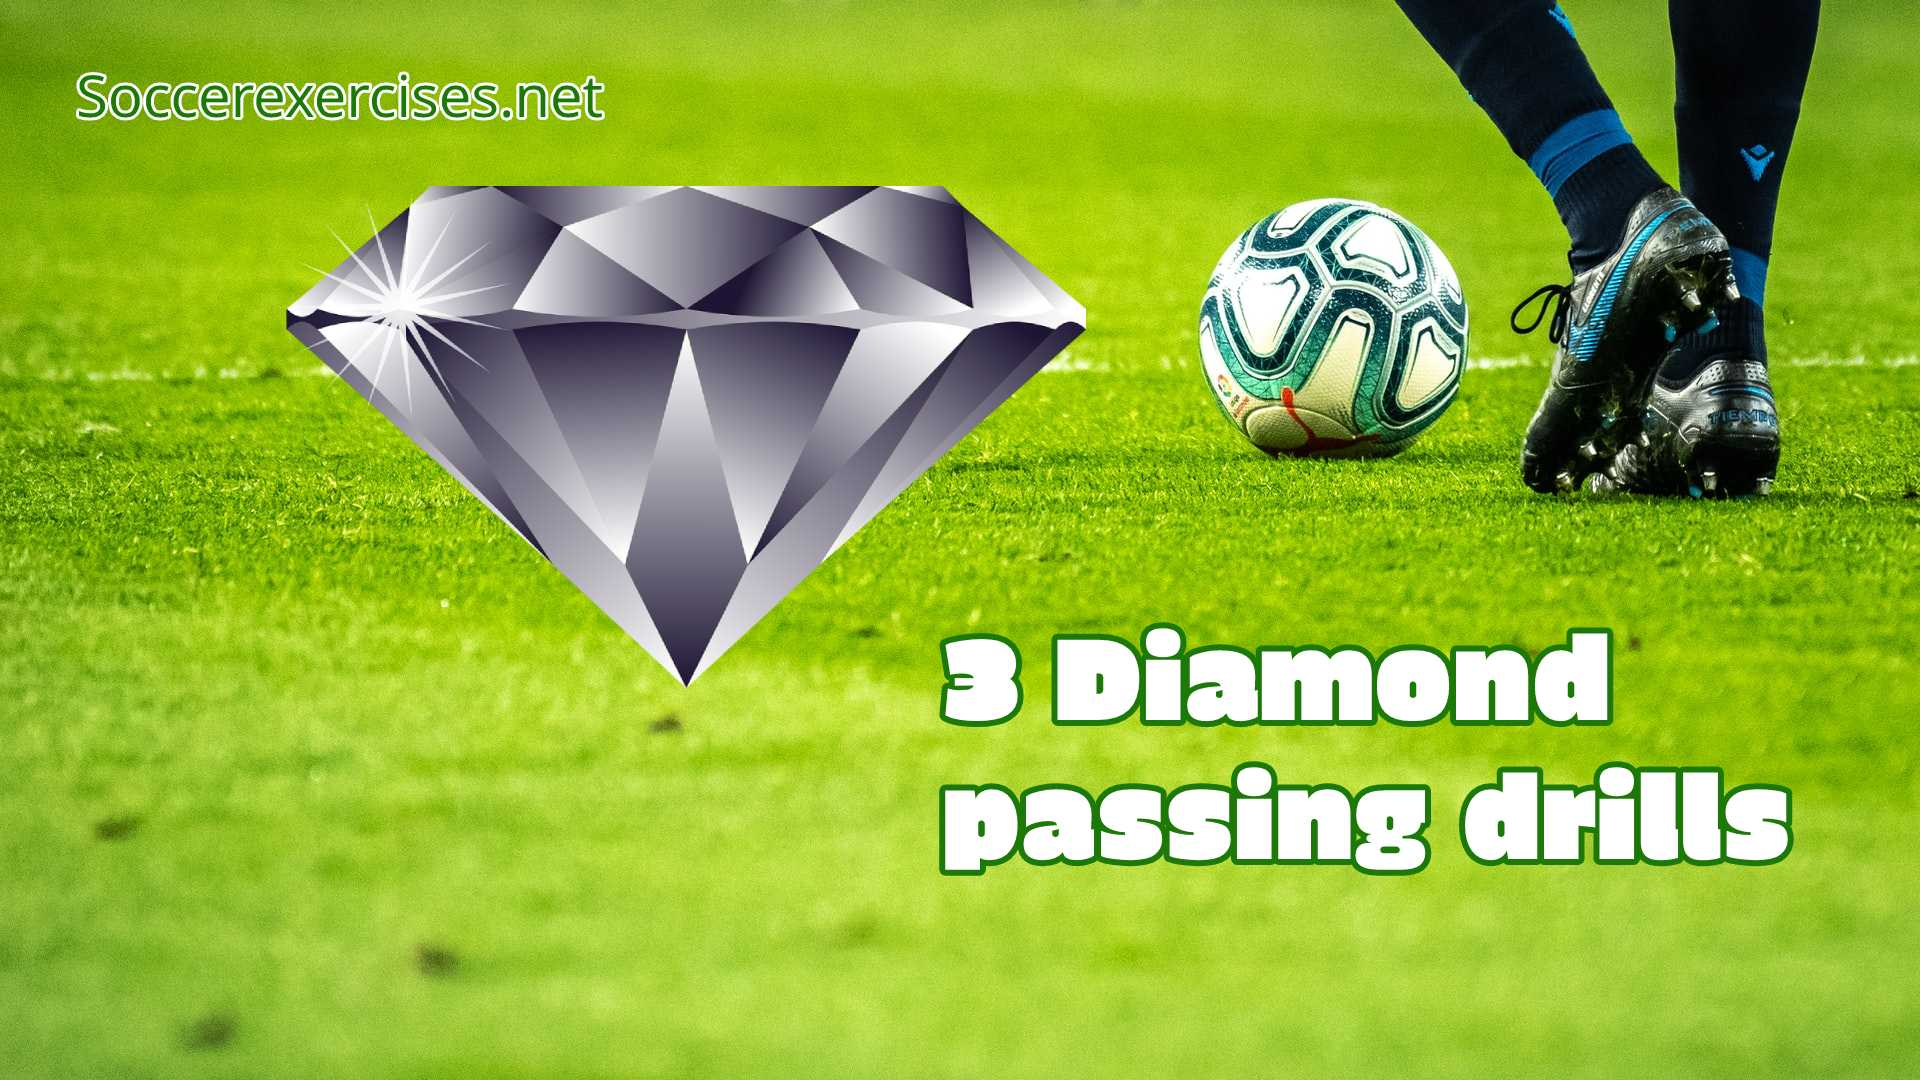 #113 3 diamond passing drills